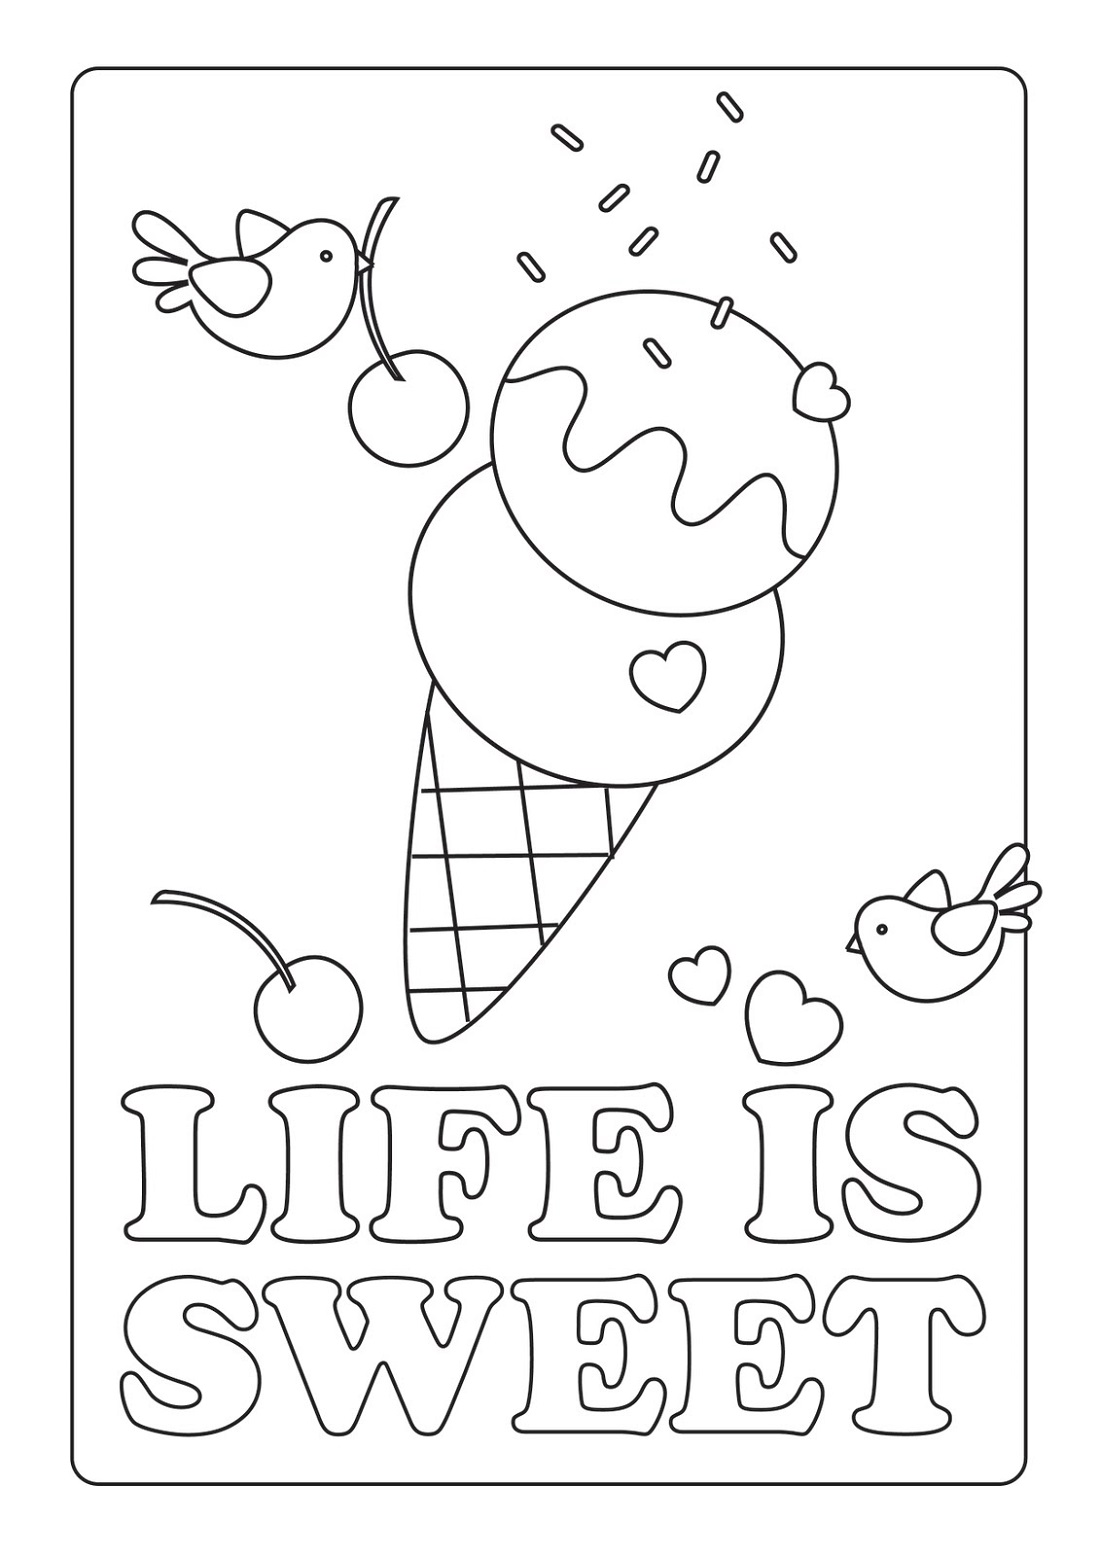 Coloring Activity Pages For Kids